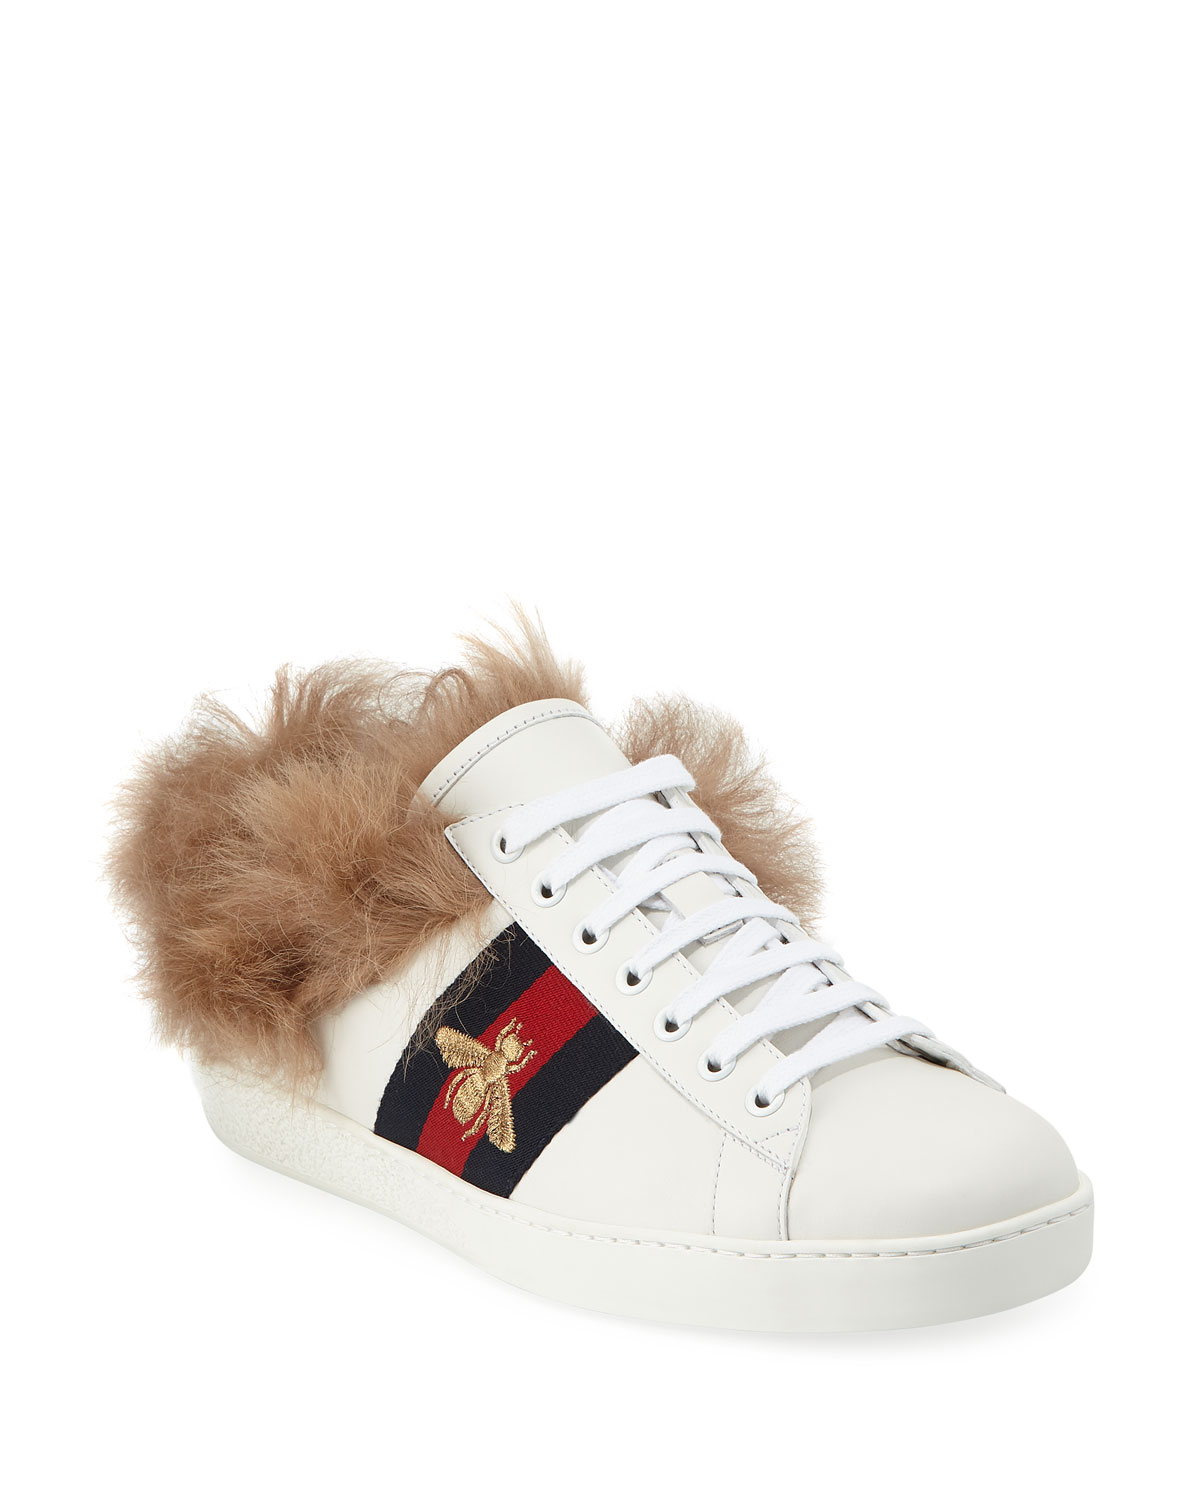 3d88ac477ed Gucci Ace Sneakers with Fur